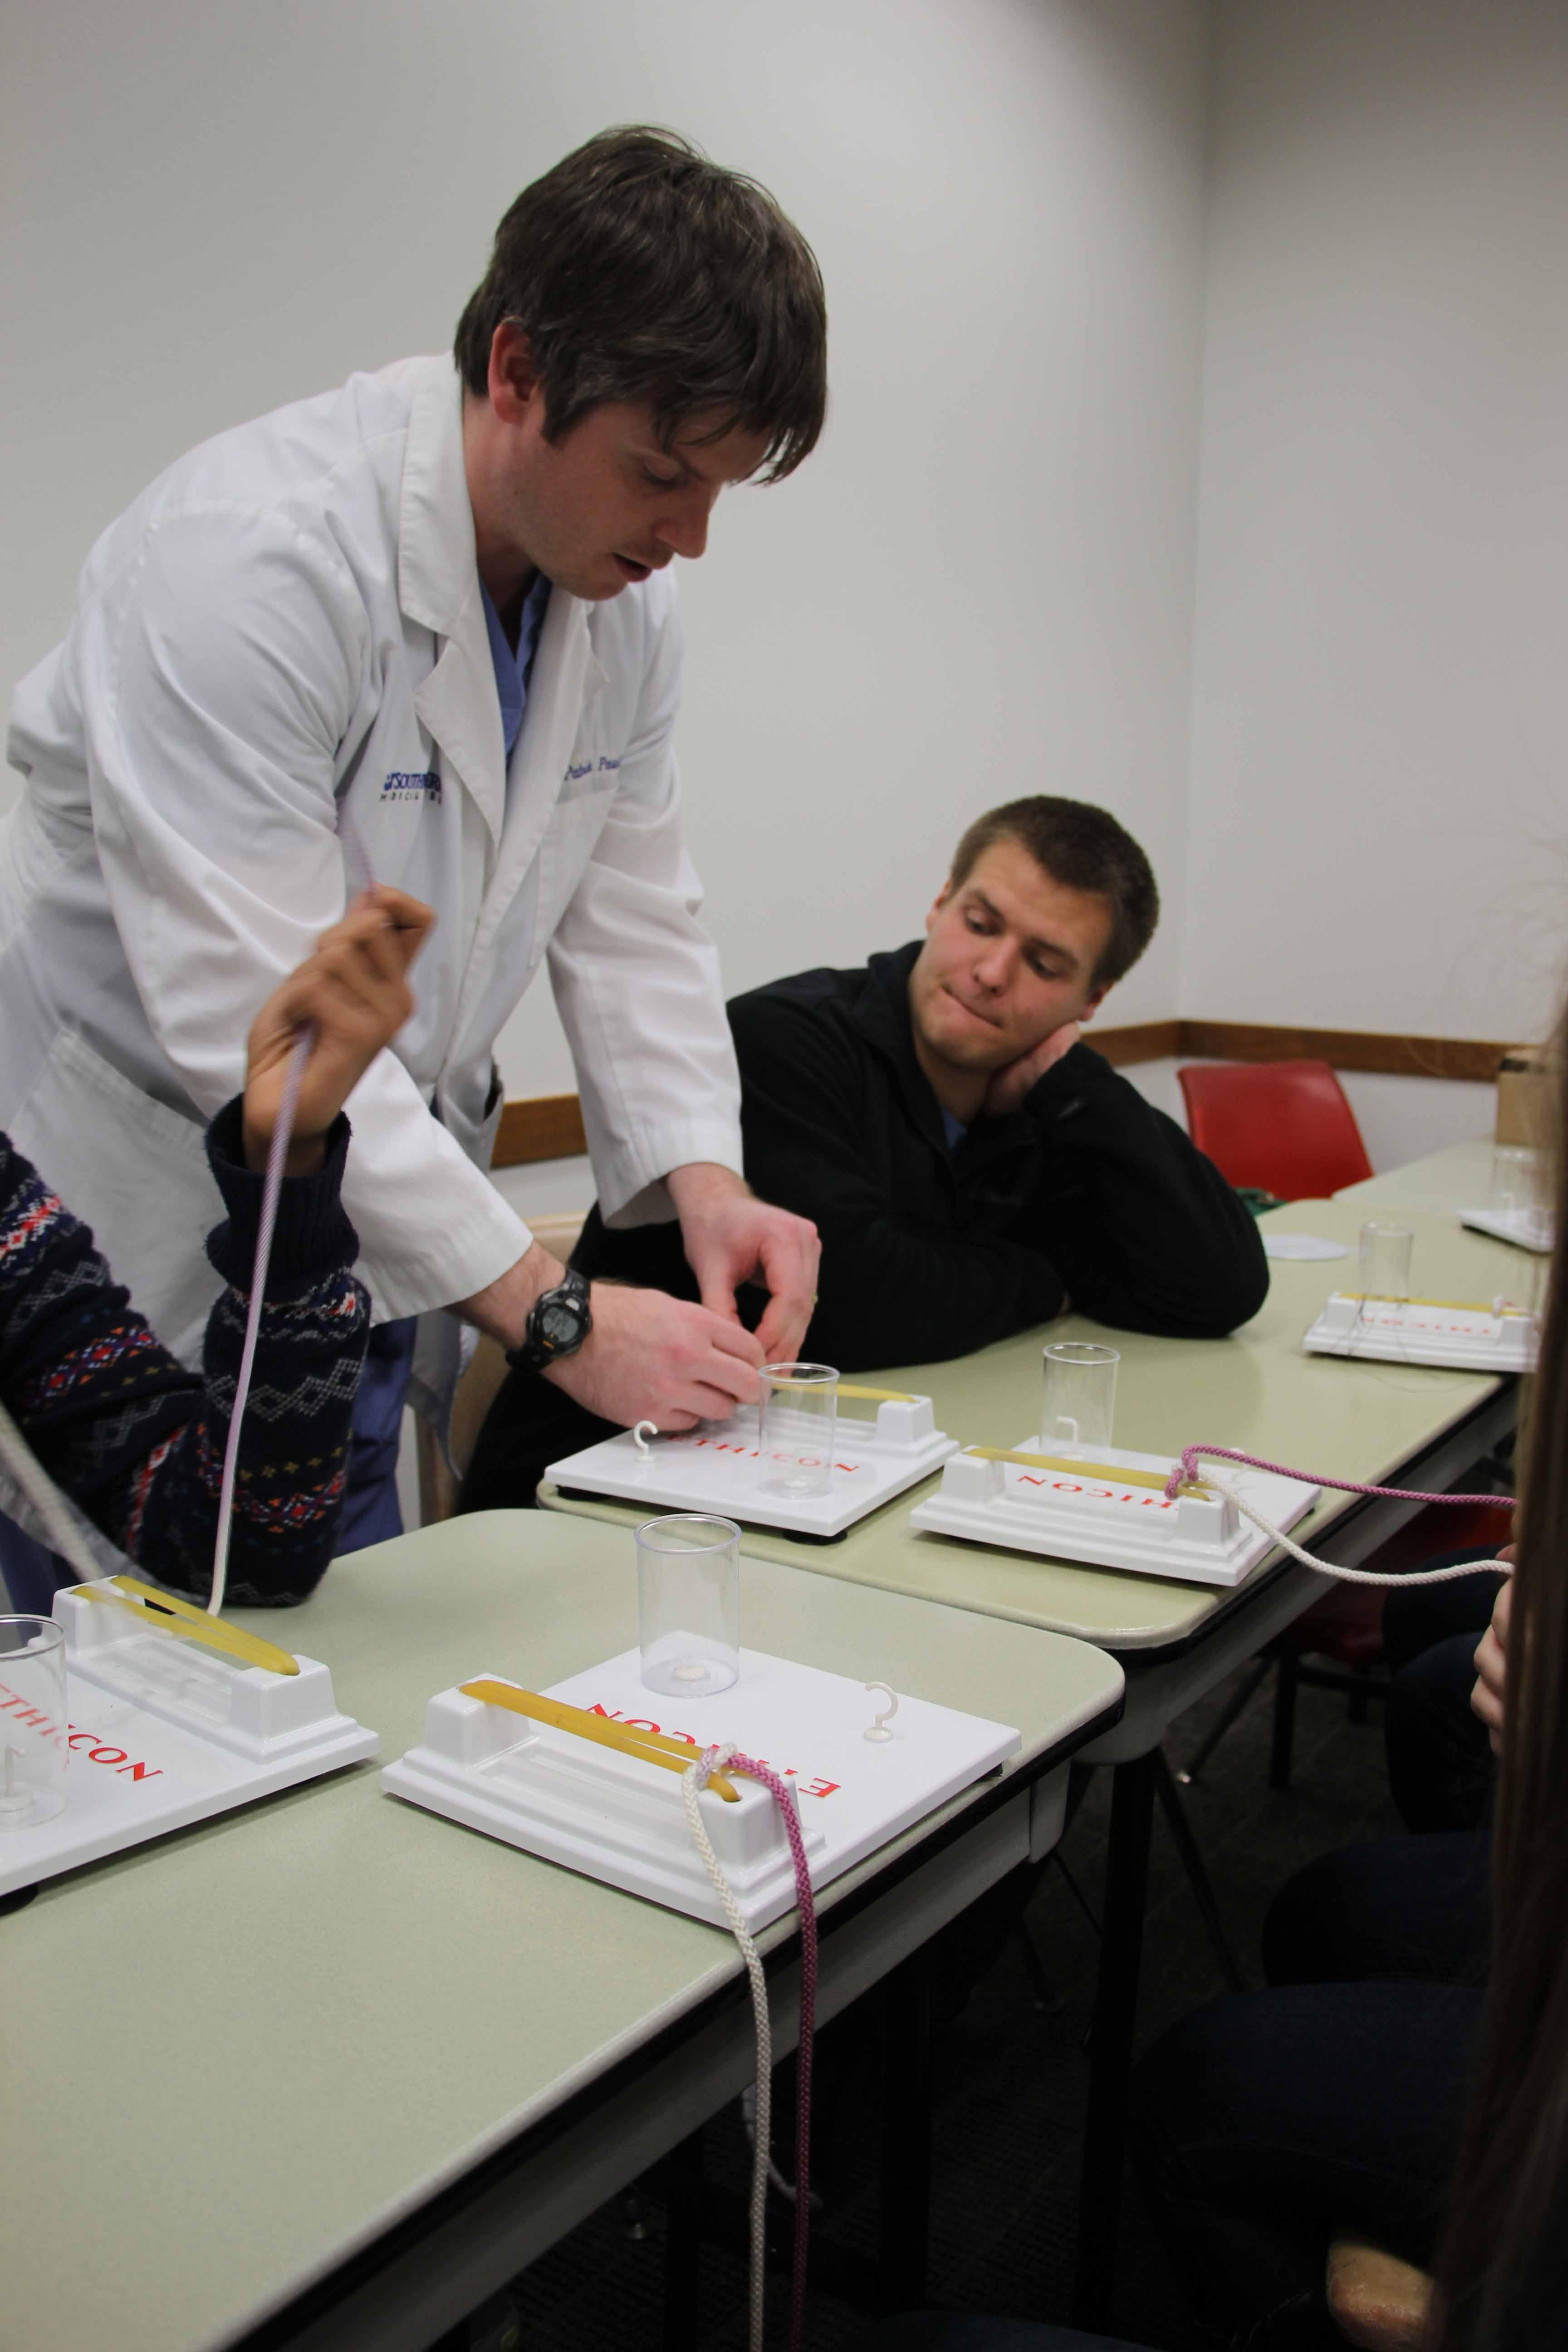 Students studying health science received help and instruction from medical professionals, like senior Jacob Poteet.